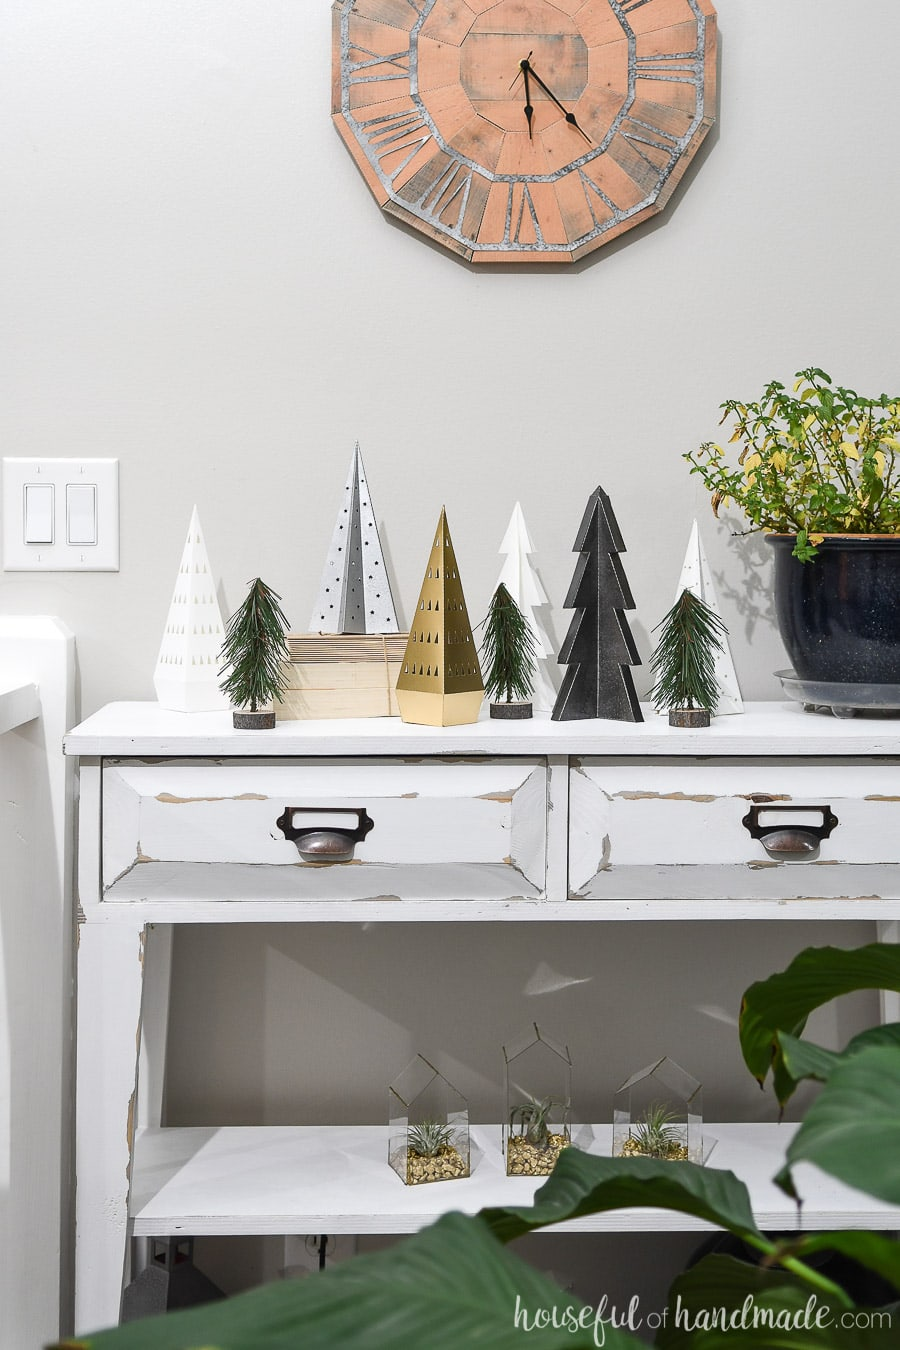 Small console table with a variety of paper Christmas trees on top of it.